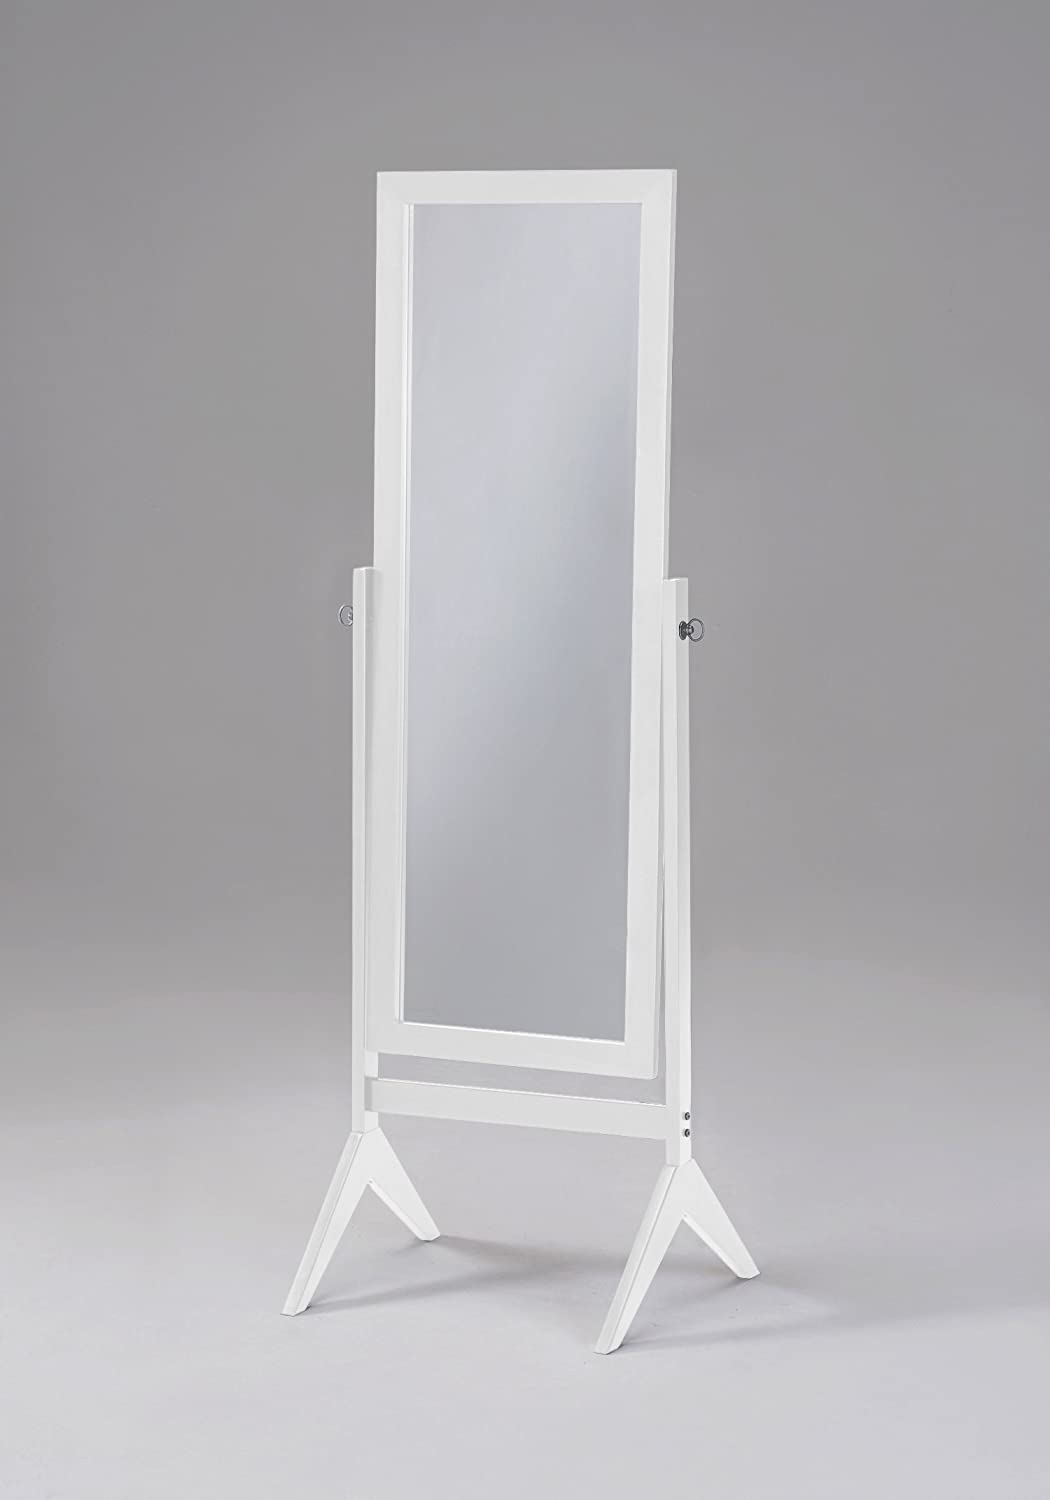 bedroom floor mirror. Amazon com  White Finish Wooden Cheval Bedroom Free Standing Floor Mirror by eHomeProducts Home Kitchen